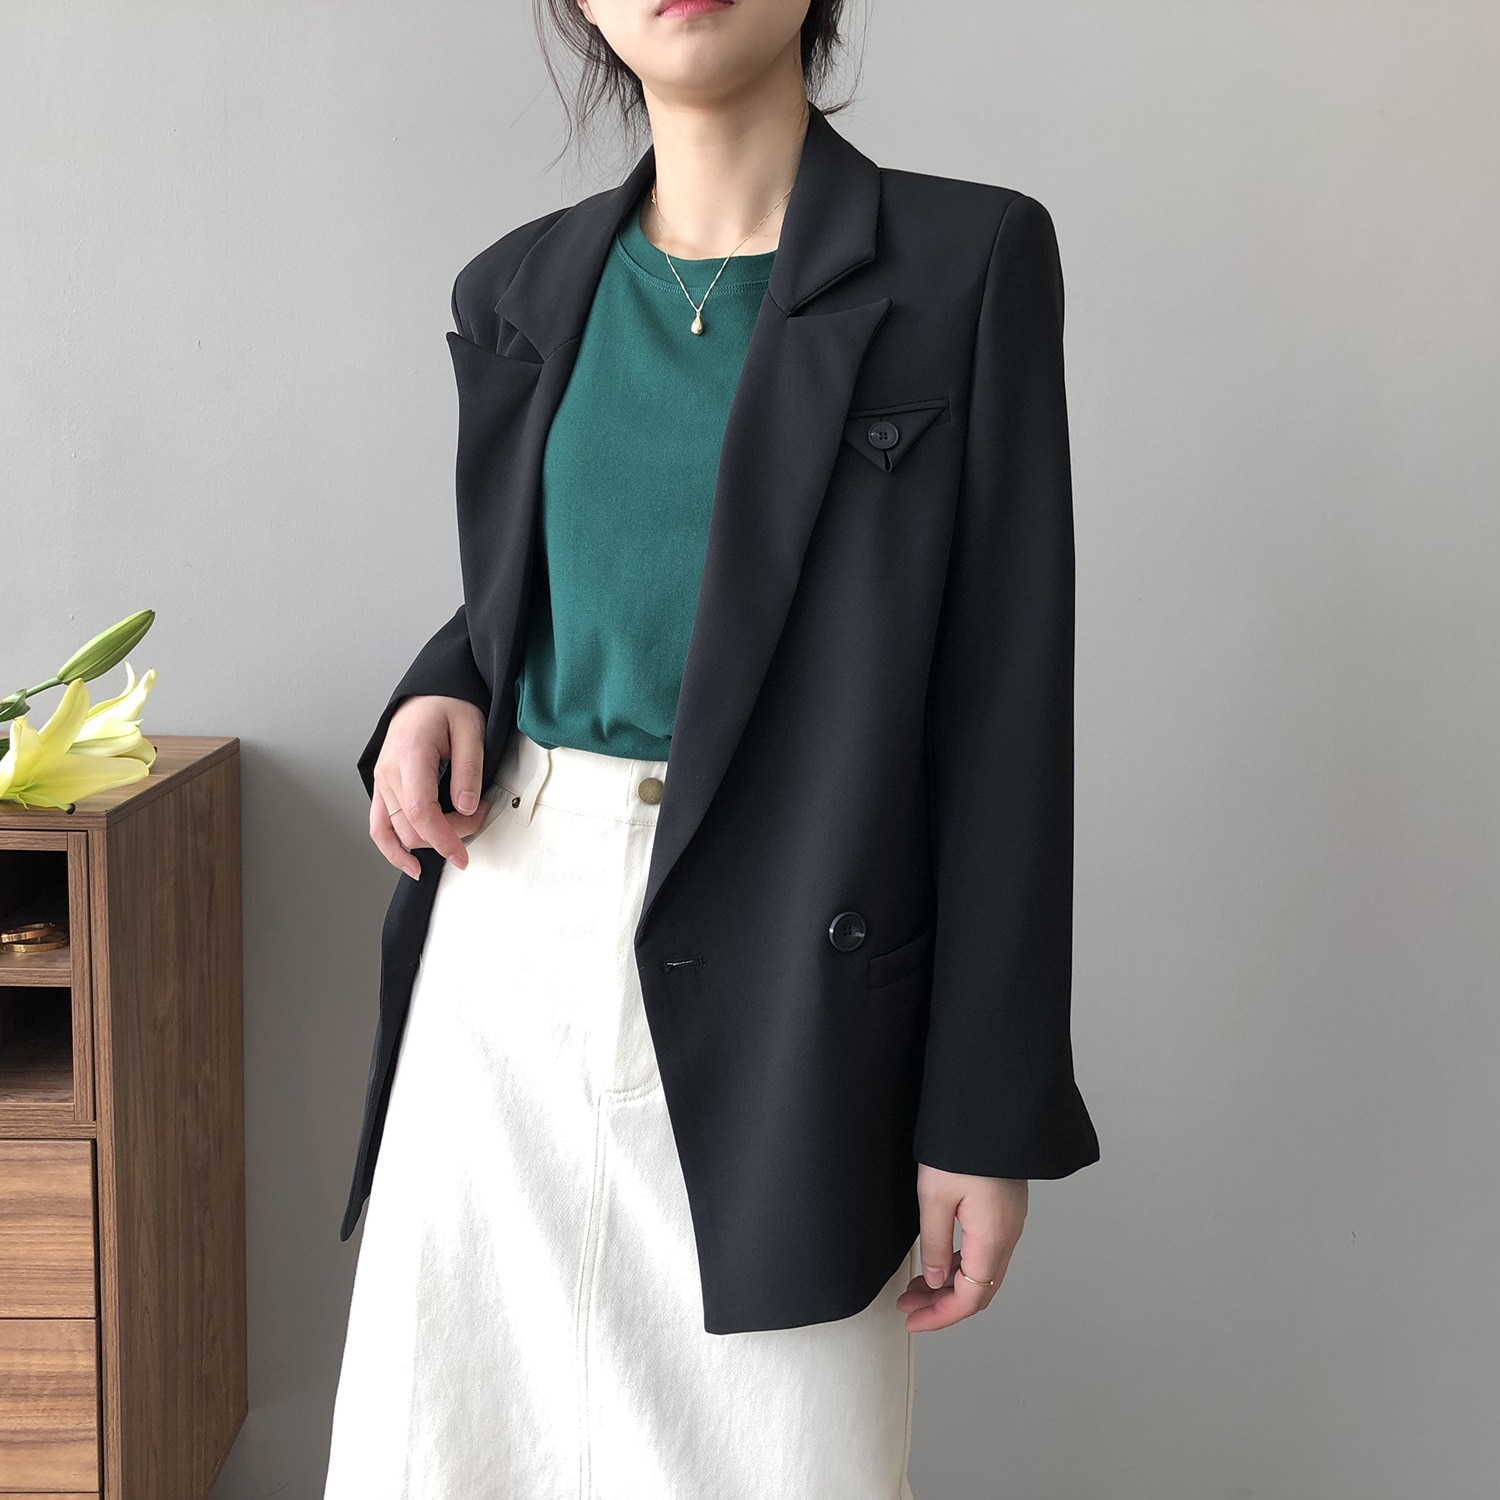 2021 Spring Autumn Womens Single Button Loose Long Blazer Suit Jacket Female Oversized Coat Solid Co